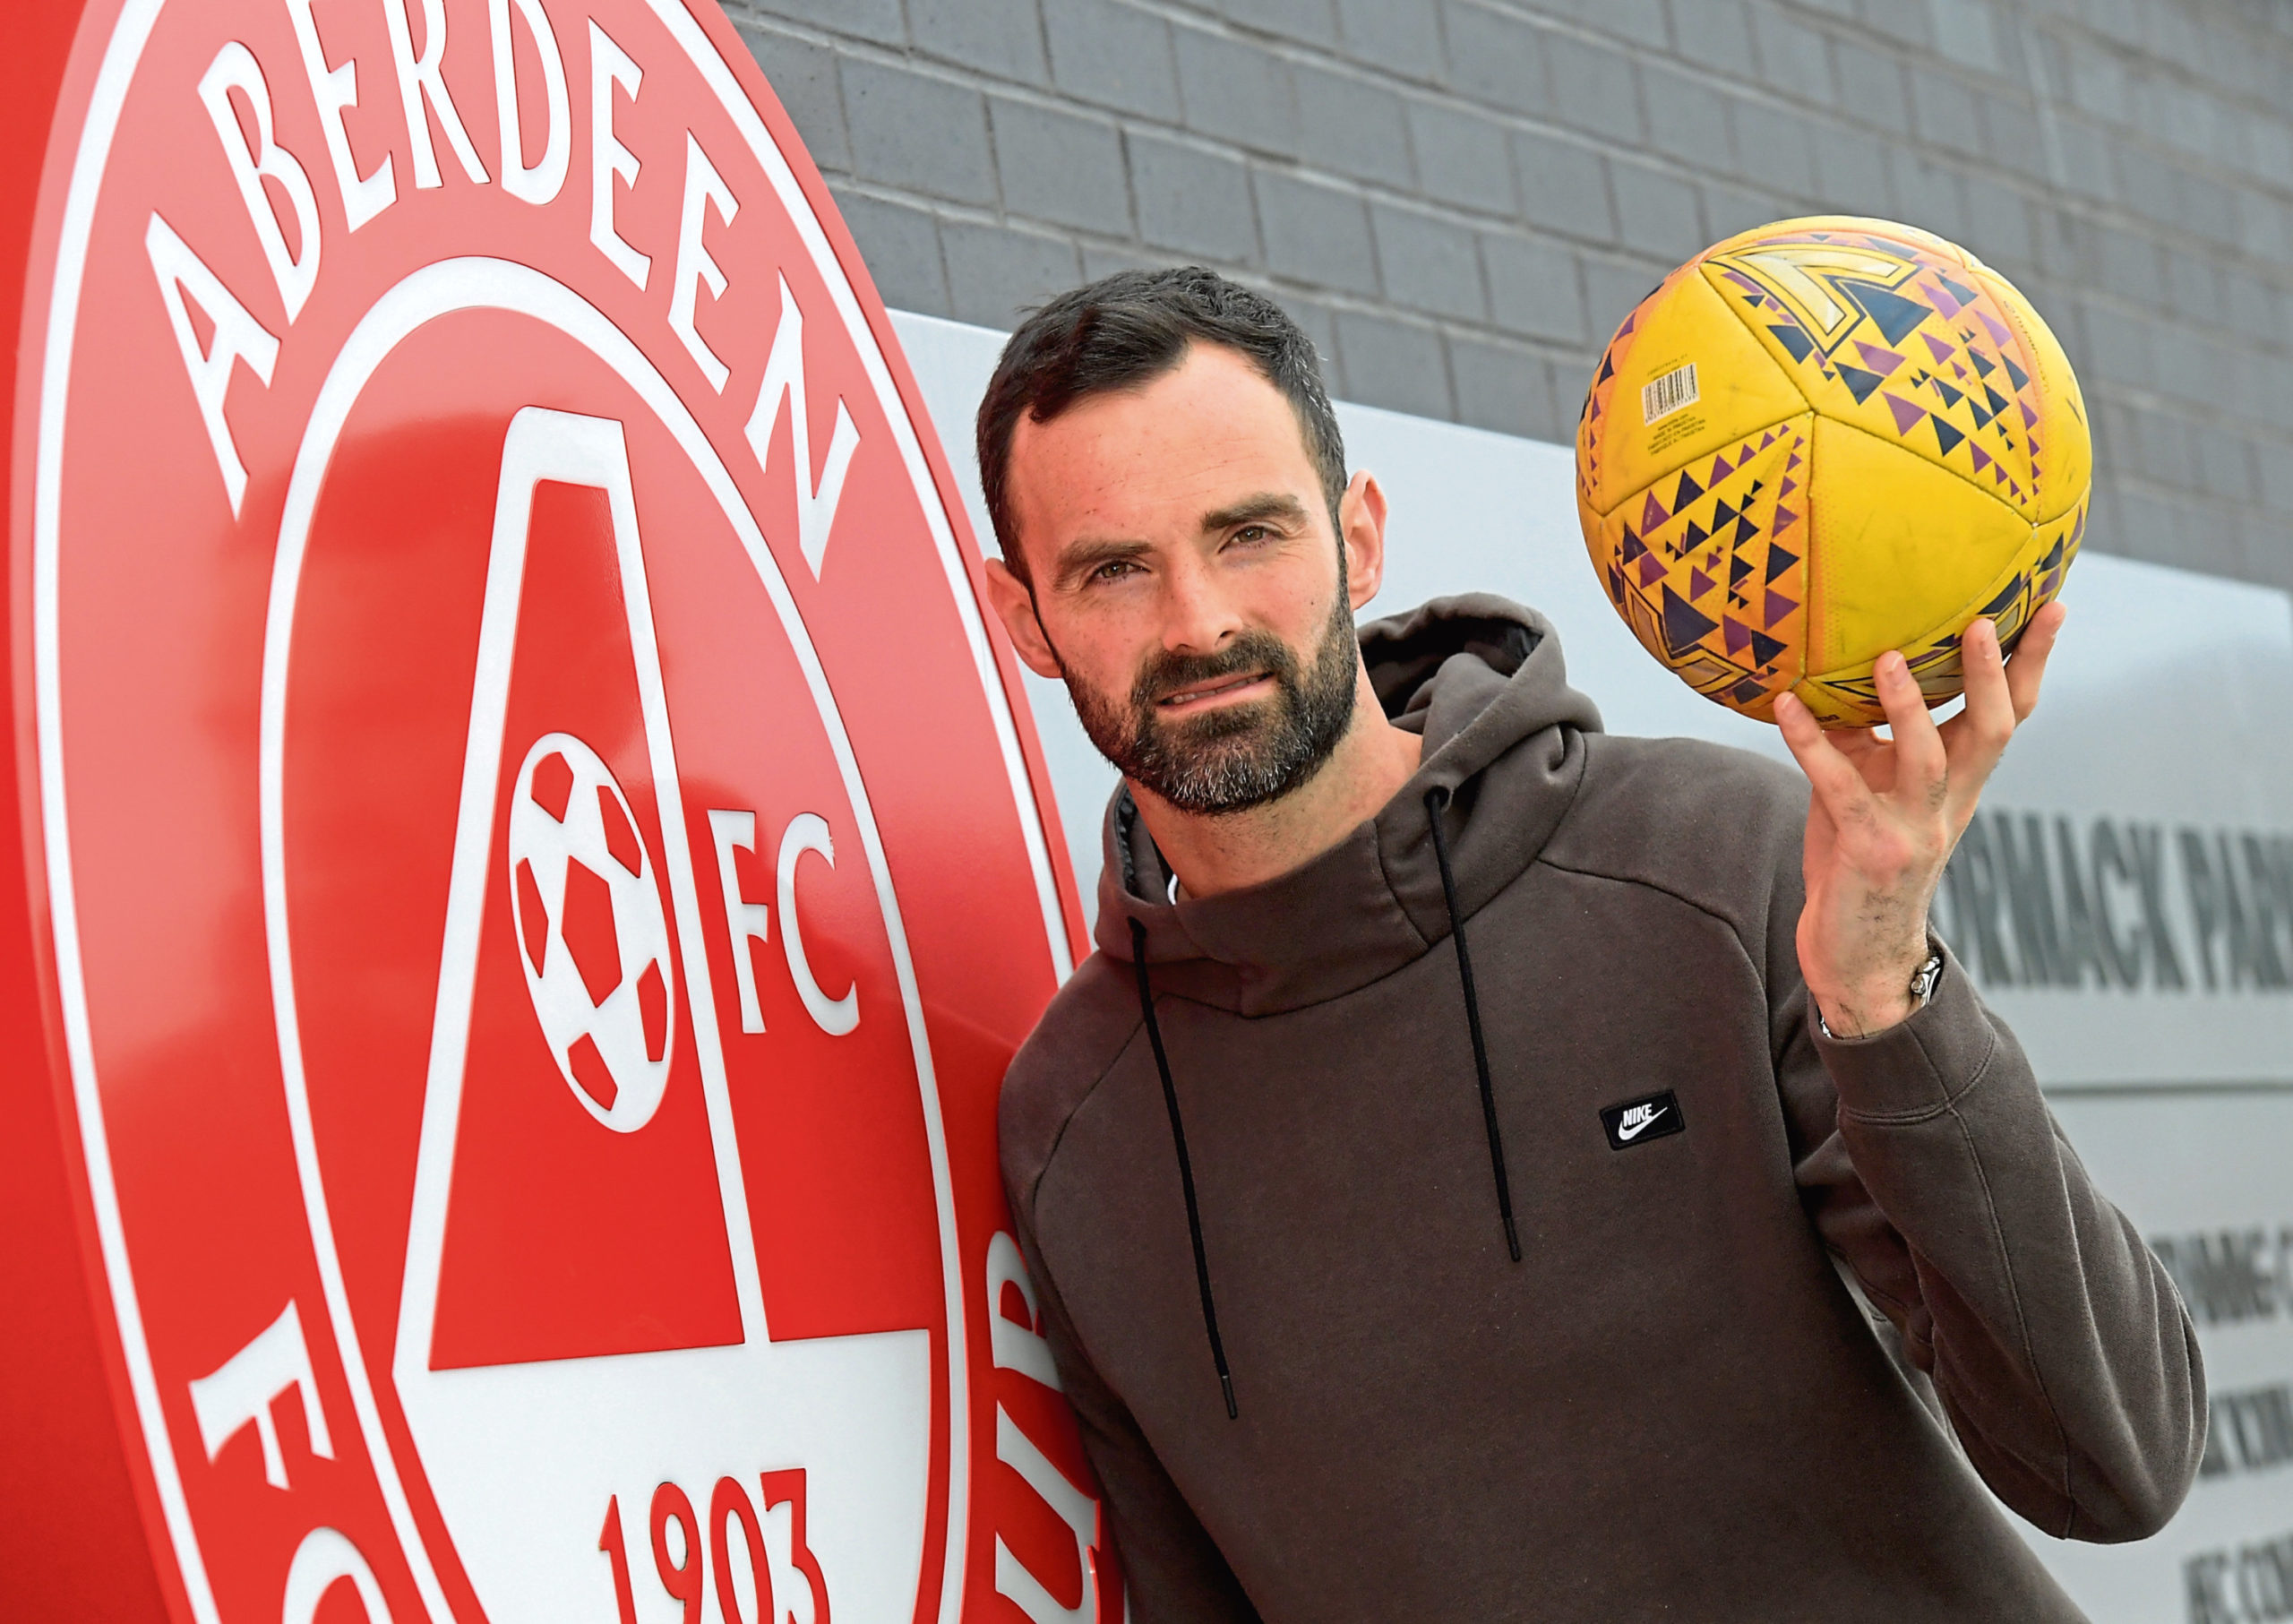 Aberdeen goalkeeper and captain Joe Lewis.